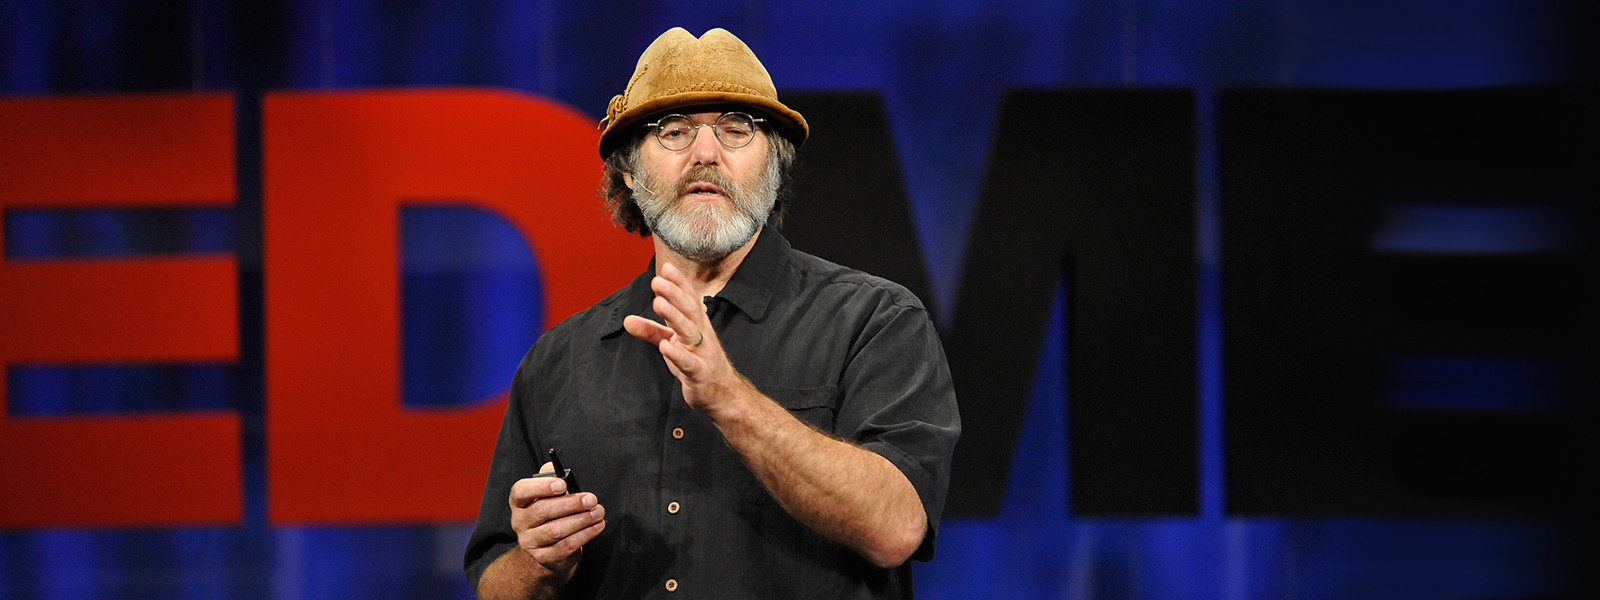 Tedmed Talk Details Is The World Ready For A Medical